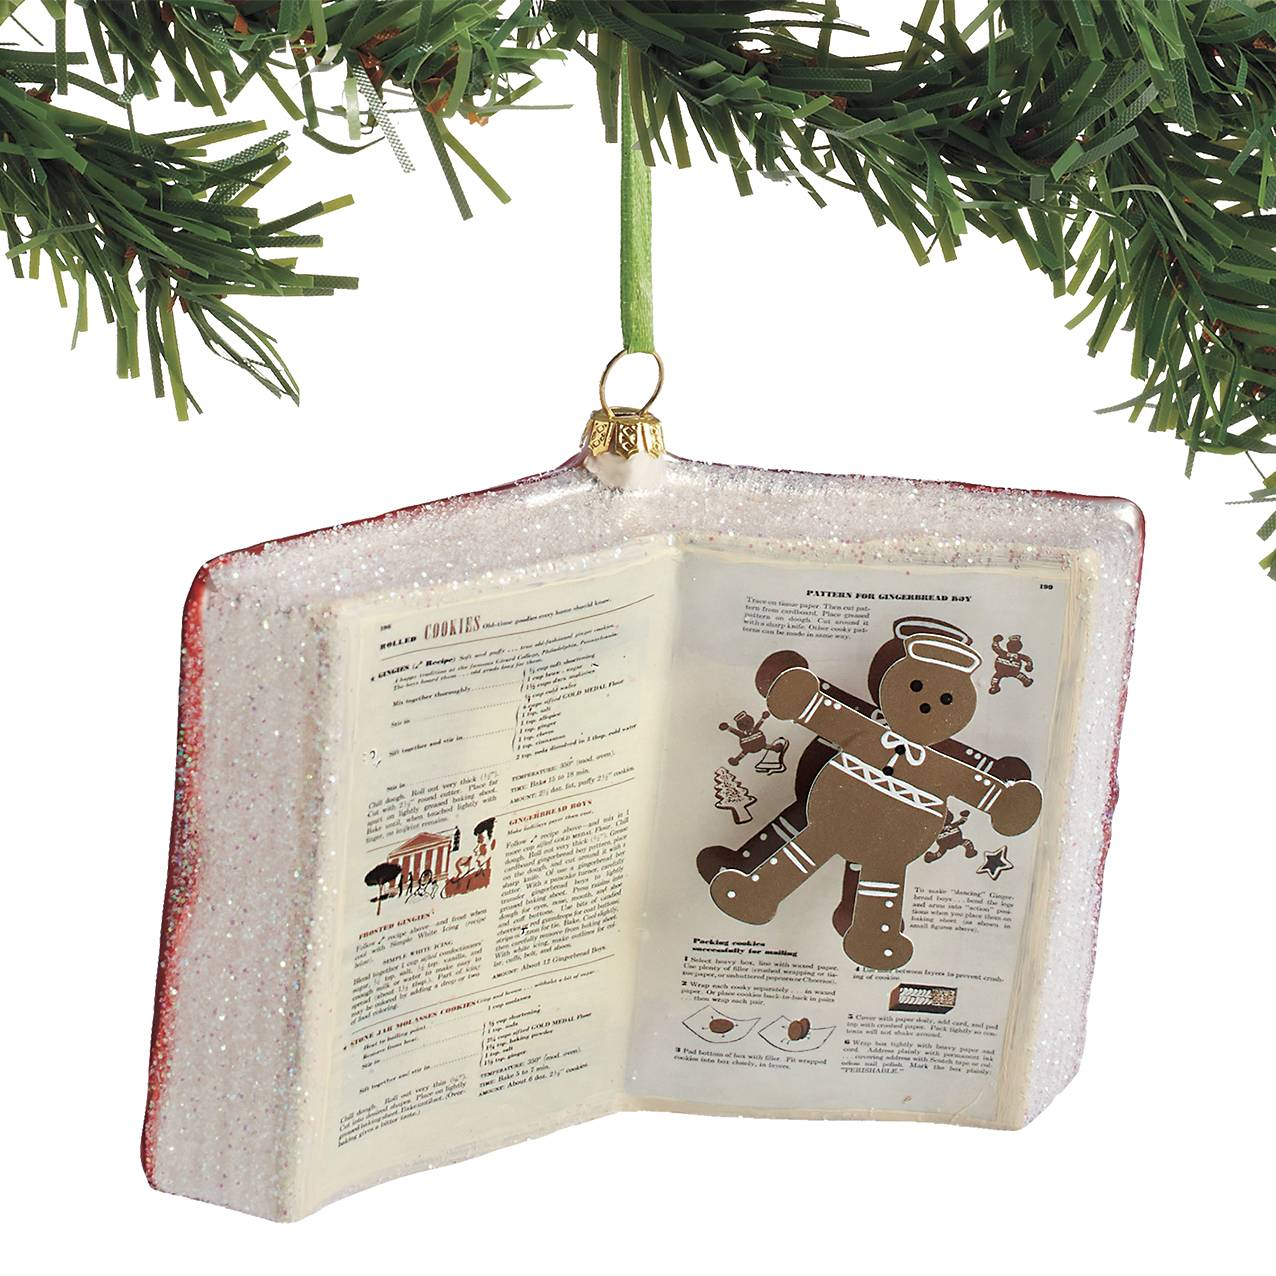 Betty Crocker Cookbook Ornament with Cookie Recipe